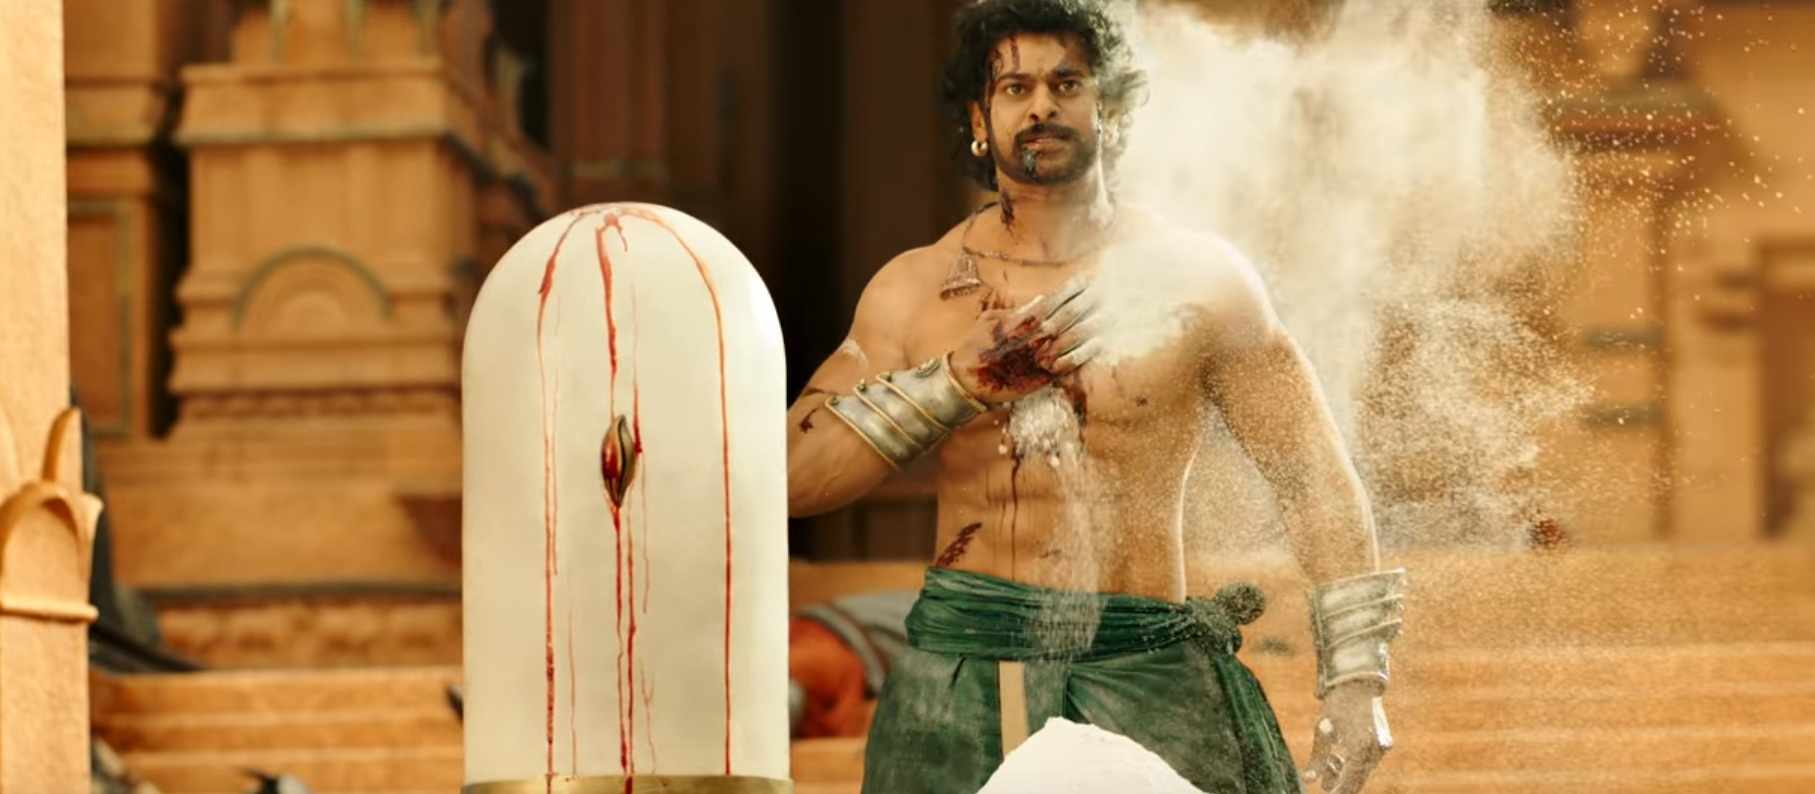 Baahubali 2 - The Conclusion 14